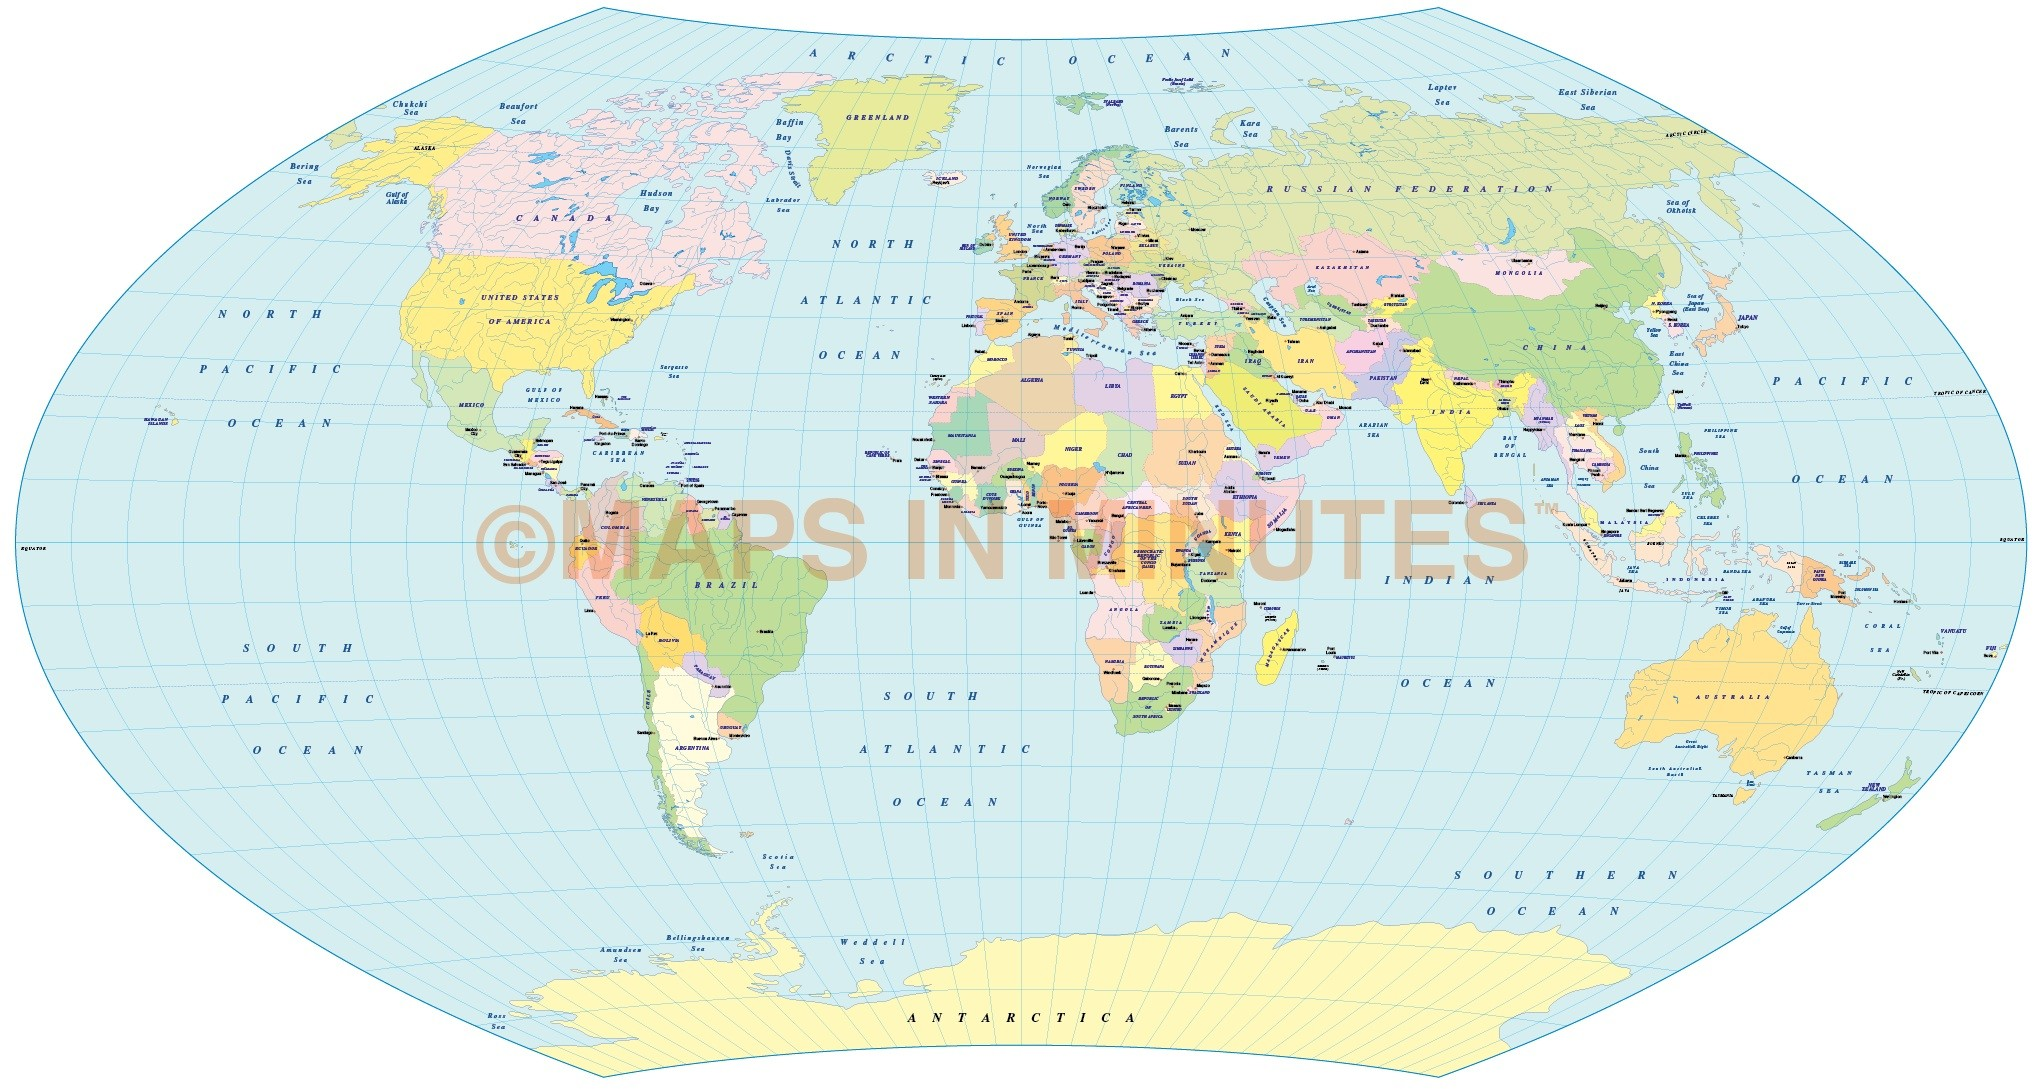 Vector political world map aitoff wagner projection uk centric in vector world map aitoff wagner projection 100m scale uk centric publicscrutiny Choice Image